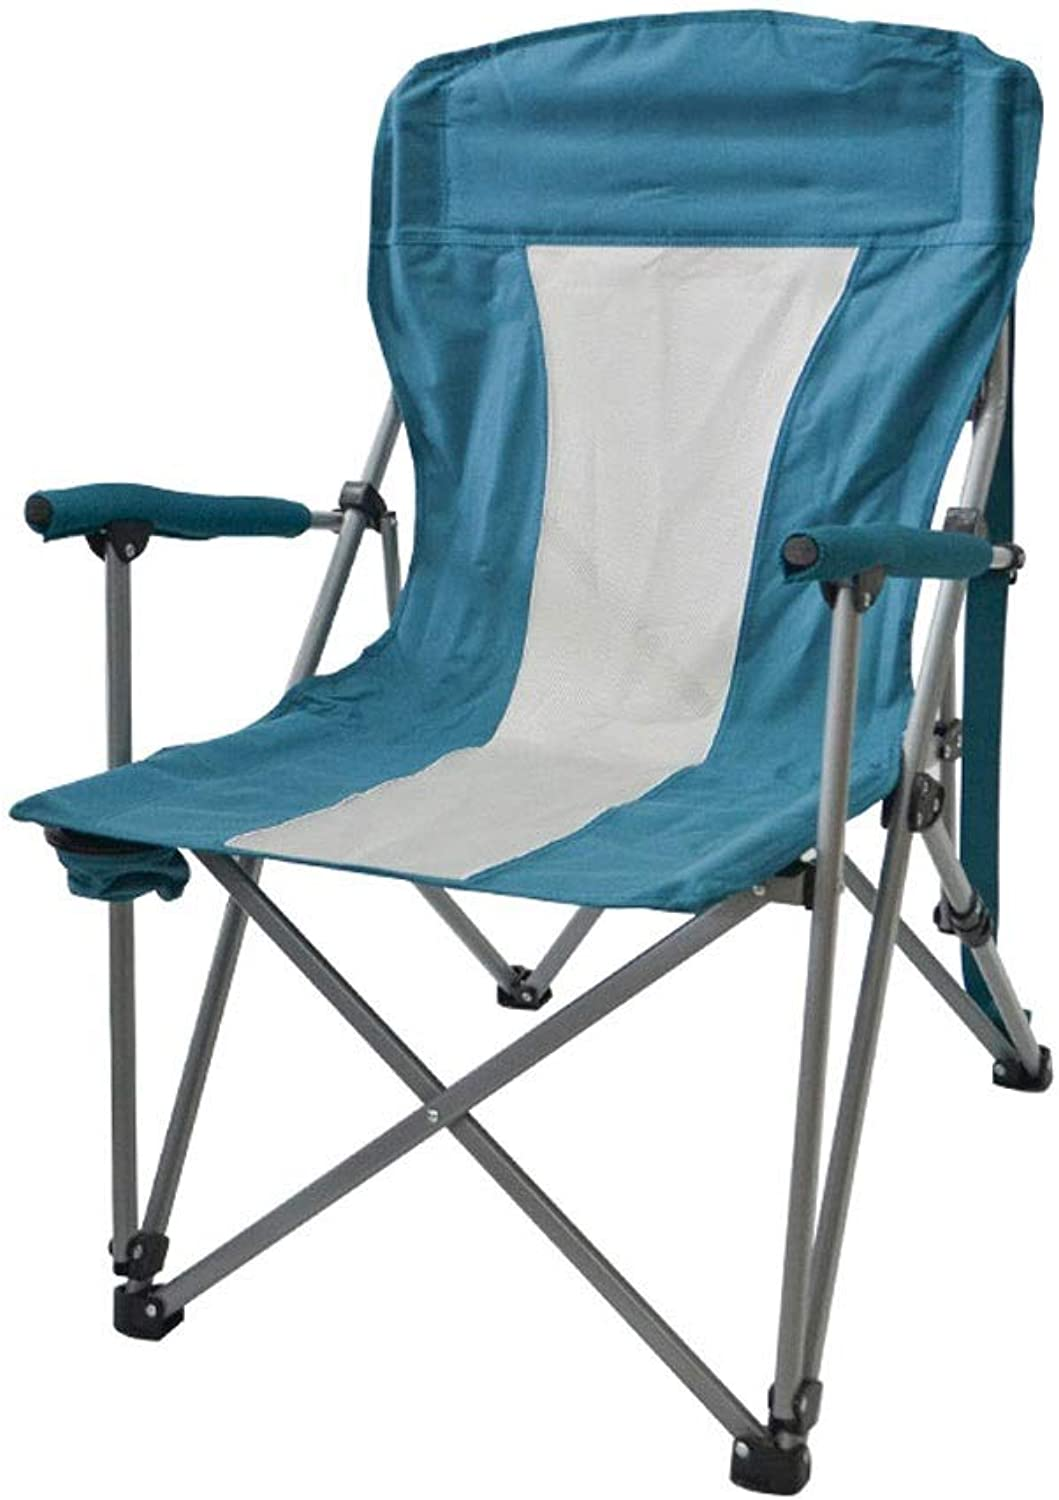 LNYJ Backrest chair outdoor multi-purpose camping armchair wear-resistant Oxford cloth folding chair non-slip fishing beach chair Deck chair office lunch break chair with cup holder (Load bearing 150k